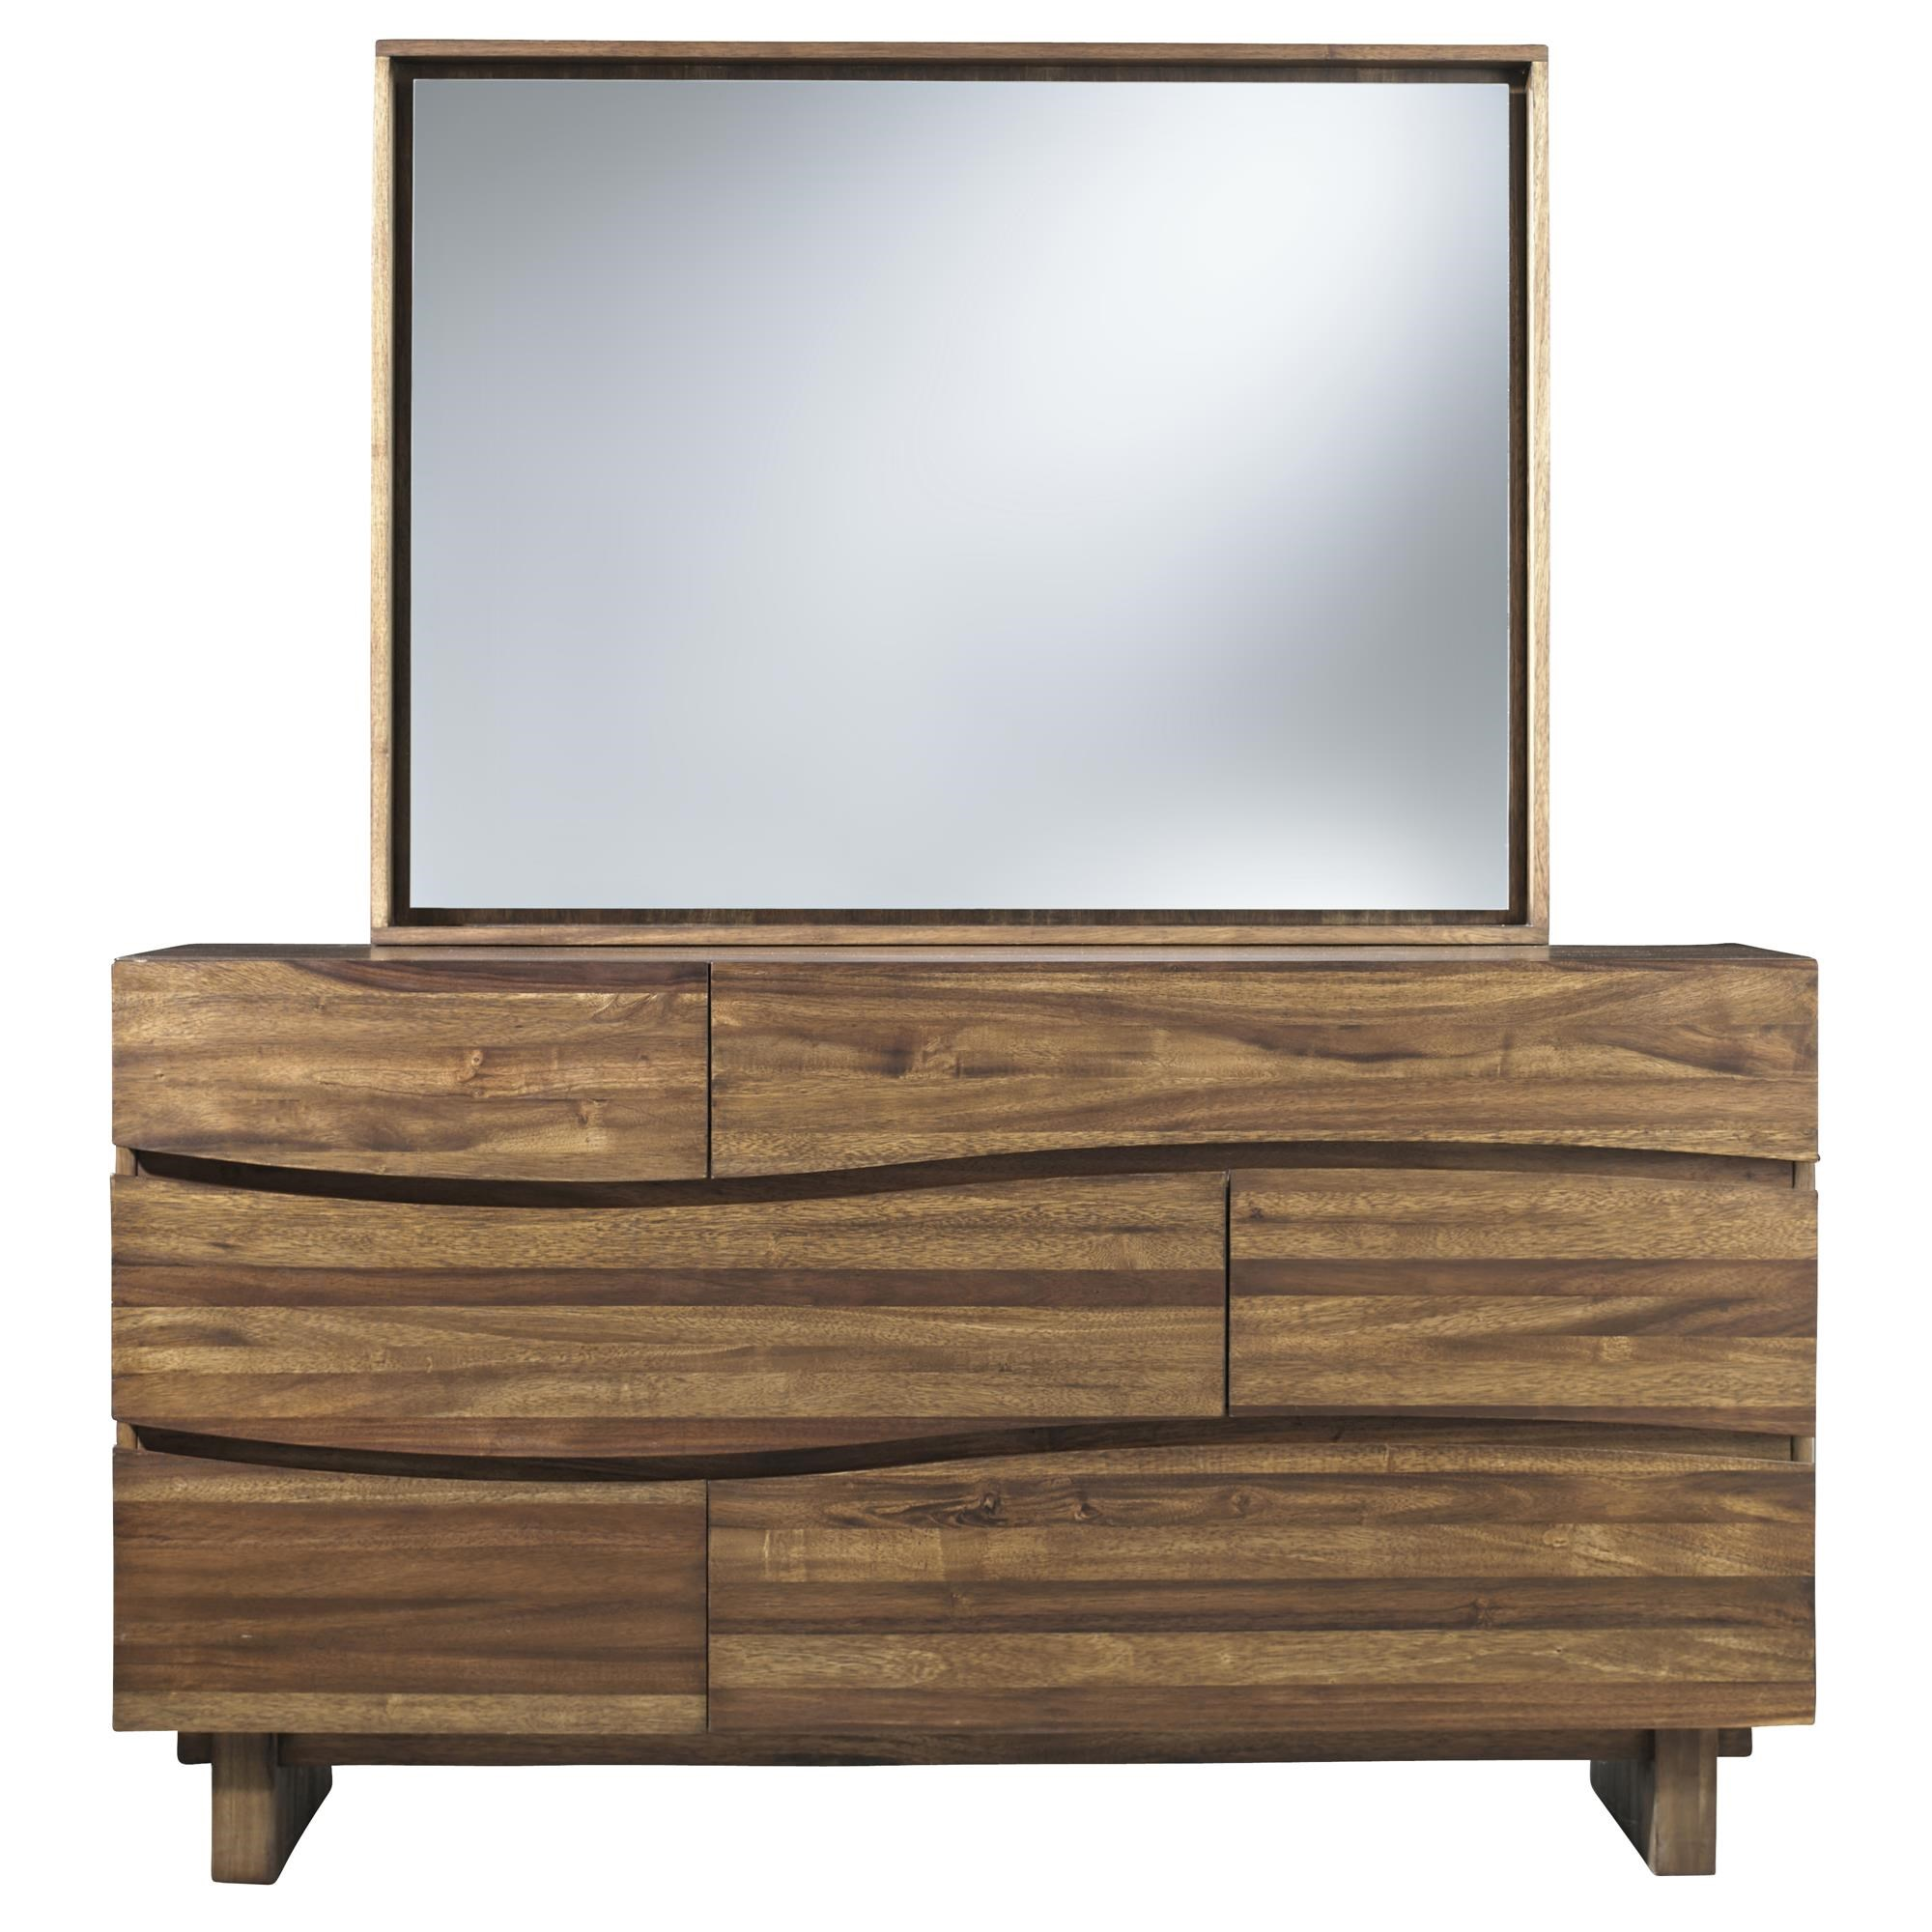 Ocean 6 Drawer Dresser by Modus International at Red Knot